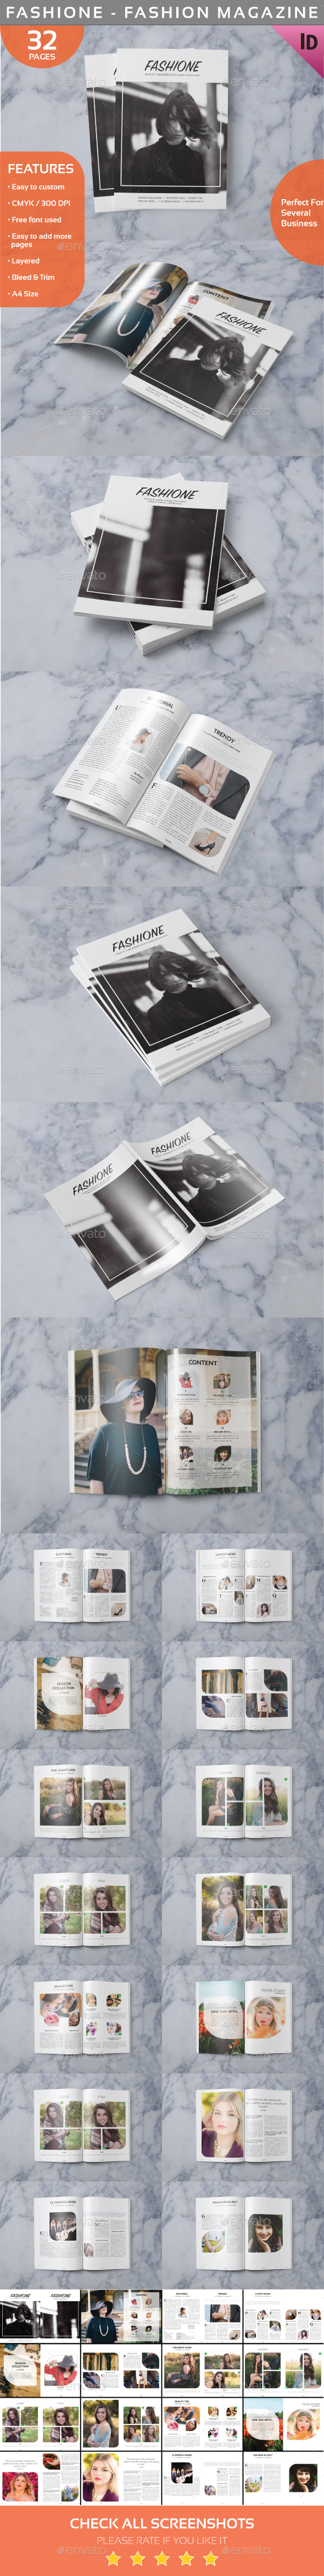 Fashione - Indesign Fashion Magazine Template - Magazines Print Templates